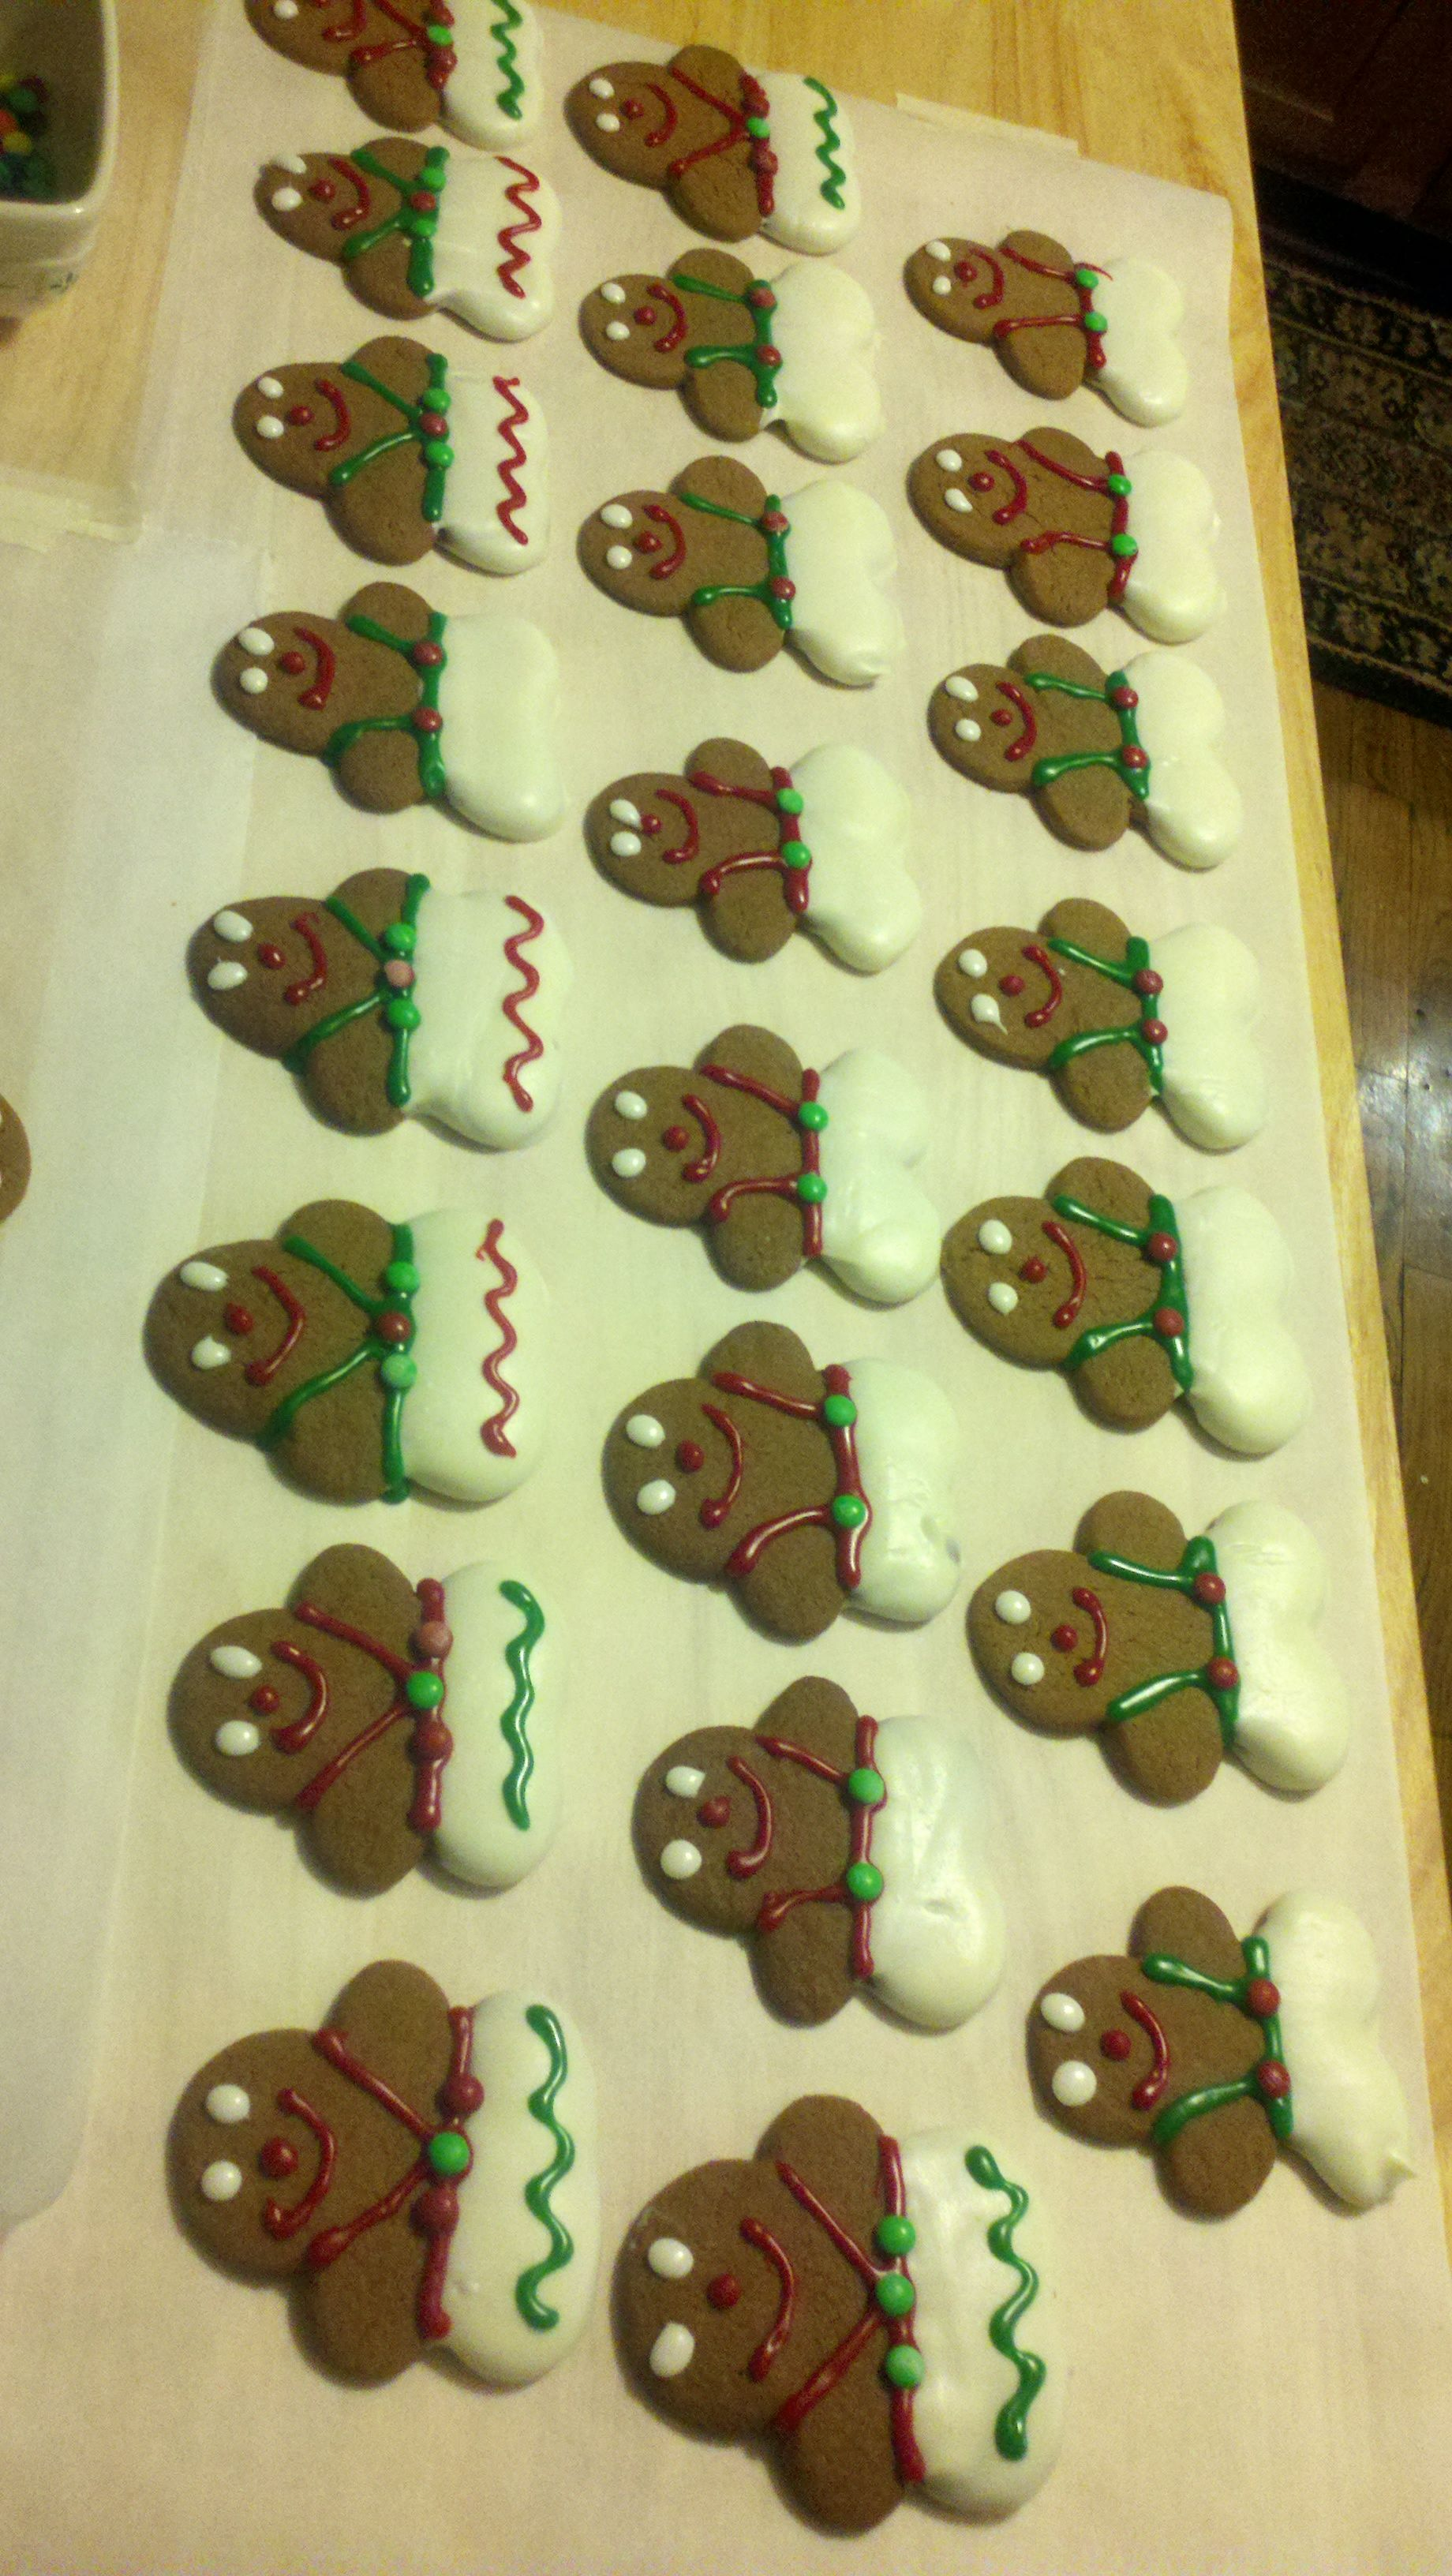 Gingerbread Assembly line!